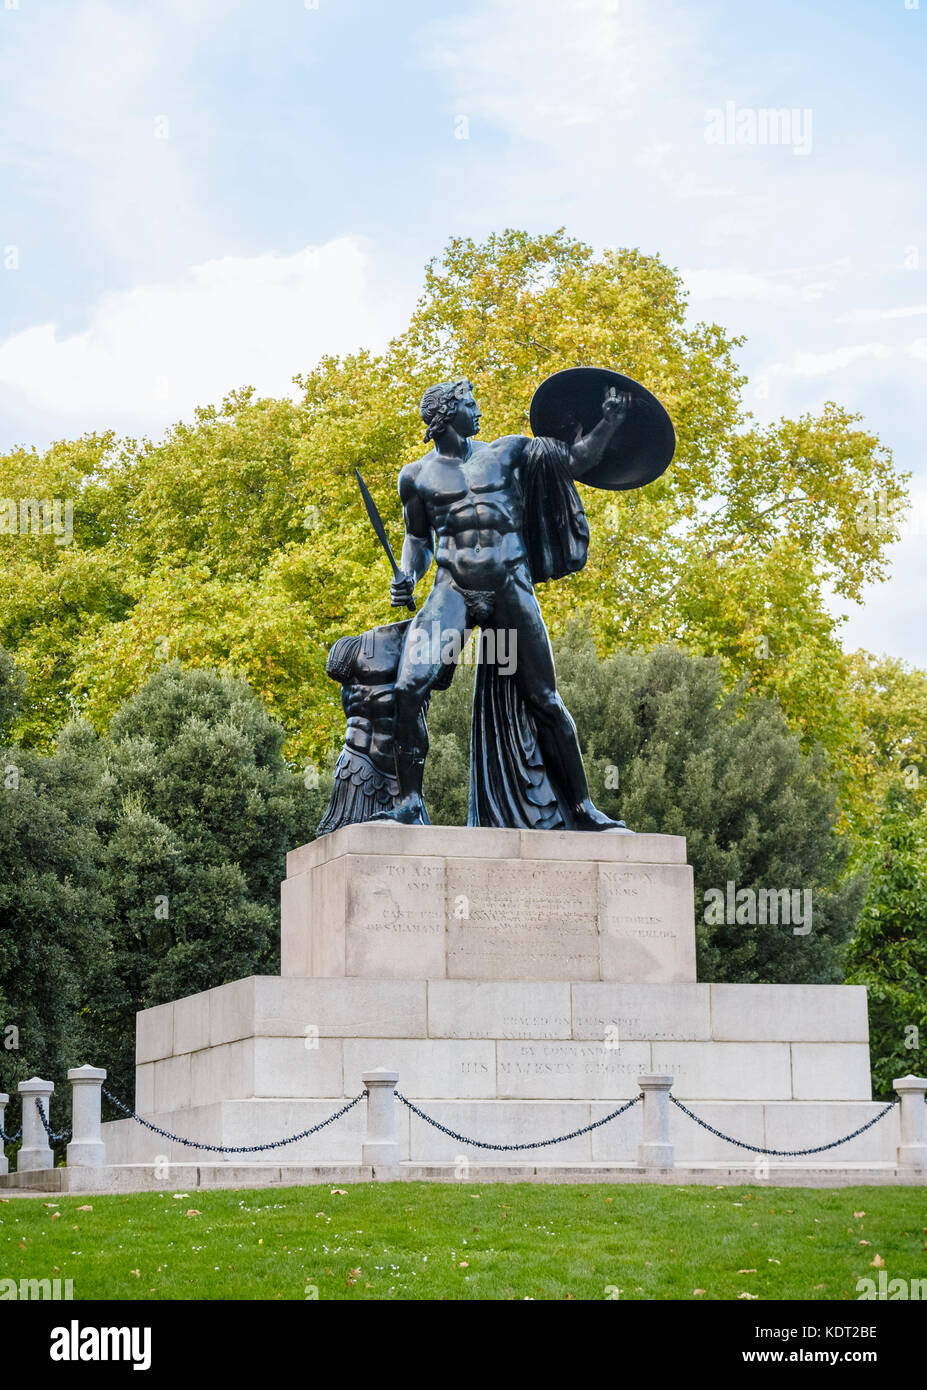 View of large bronze statue of Achilles in Hyde Park London W1 erected in honour of Arthur Wellesley, 1st Duke of - Stock Image